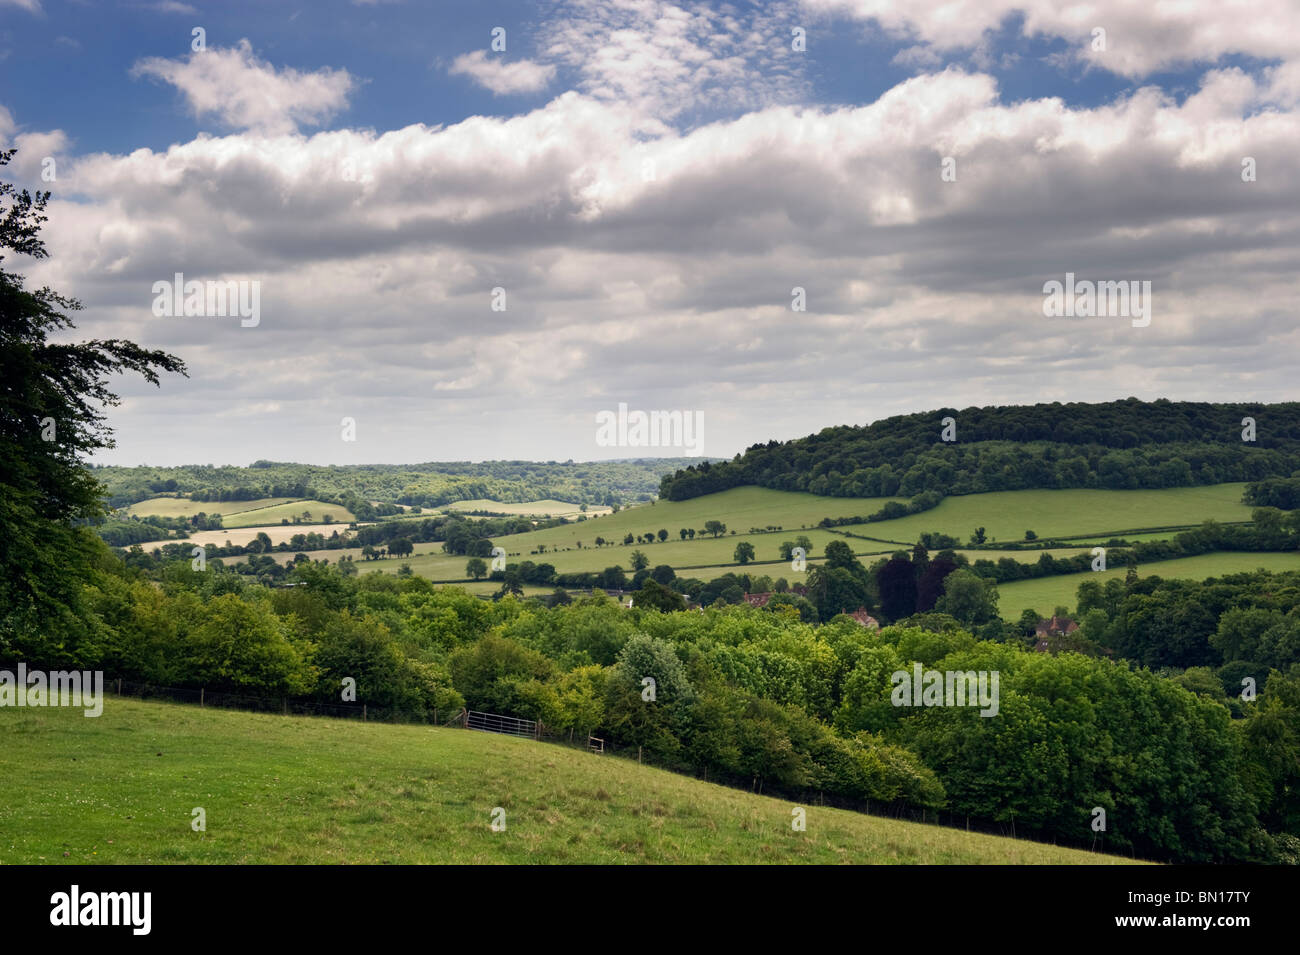 An English landscape countryside view of Hambleden valley in Chilterns countryside, Buckinghamshire UK Stock Photo